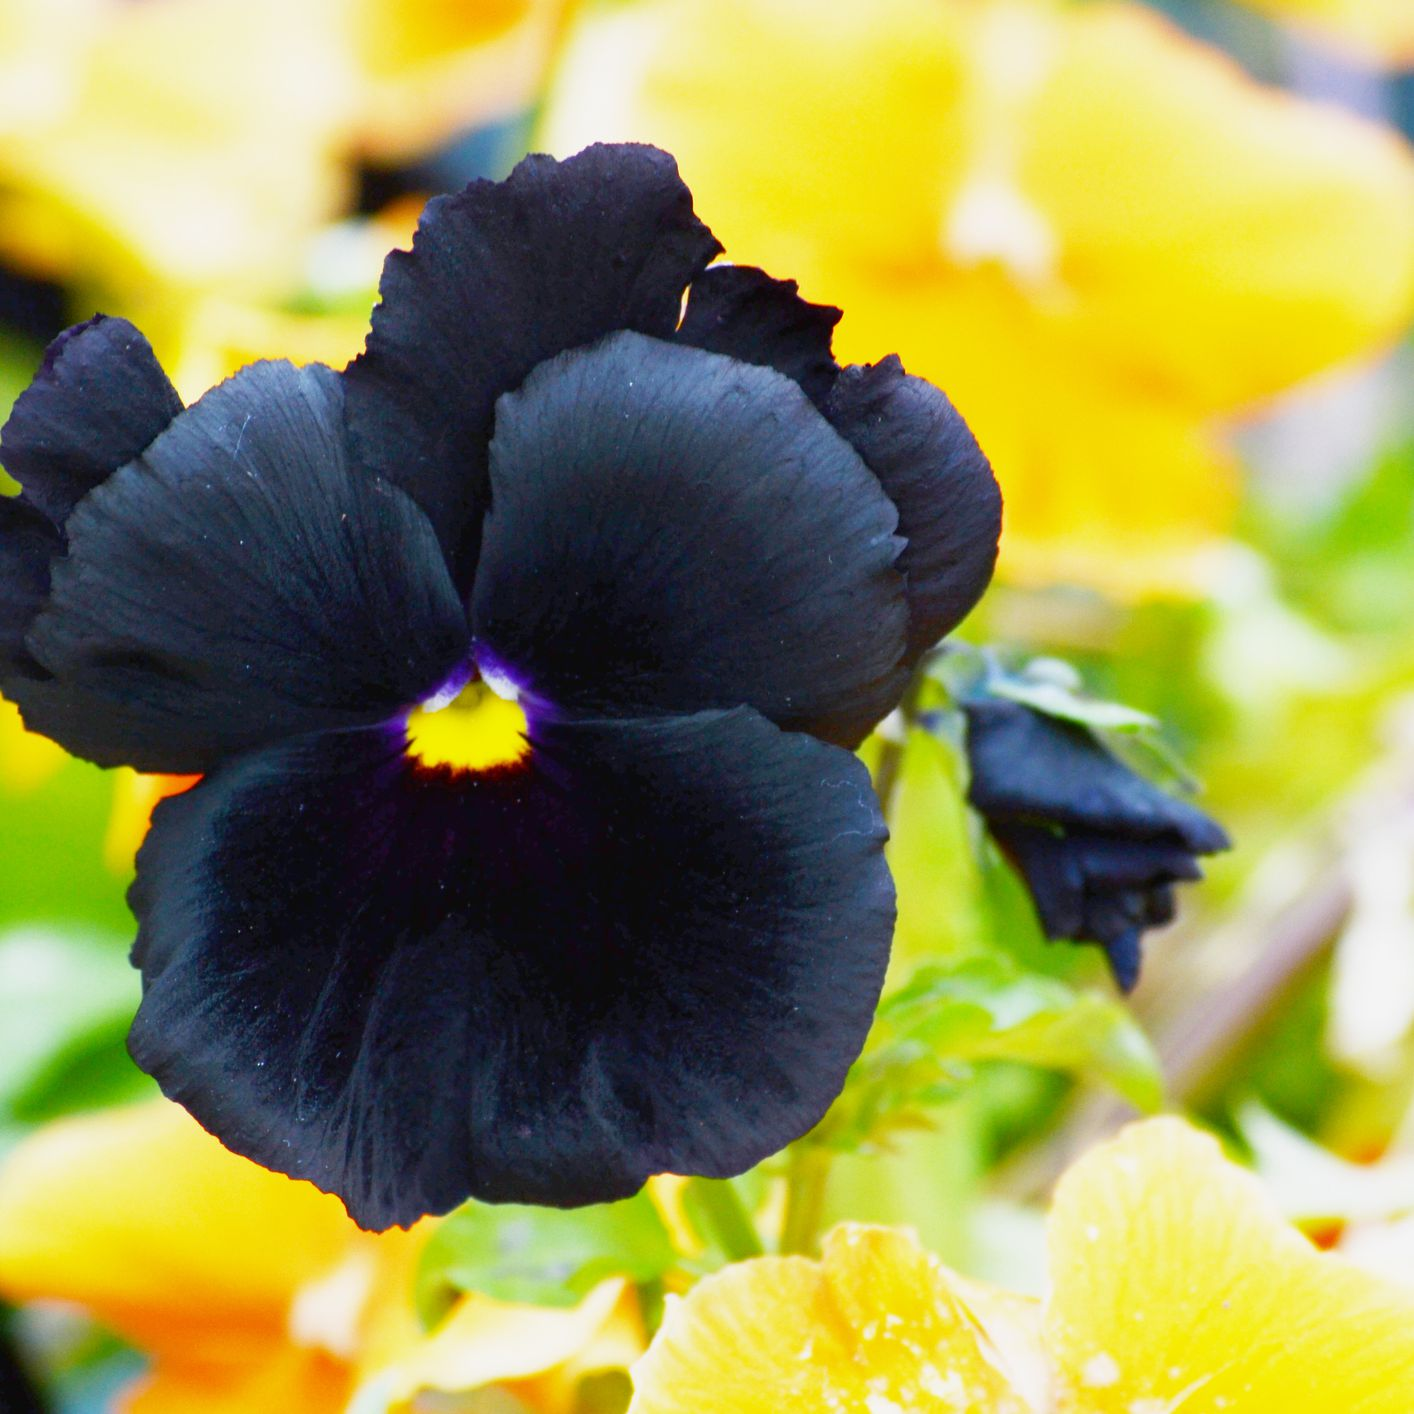 9 Black Flowers to Add Contrast to Your Garden